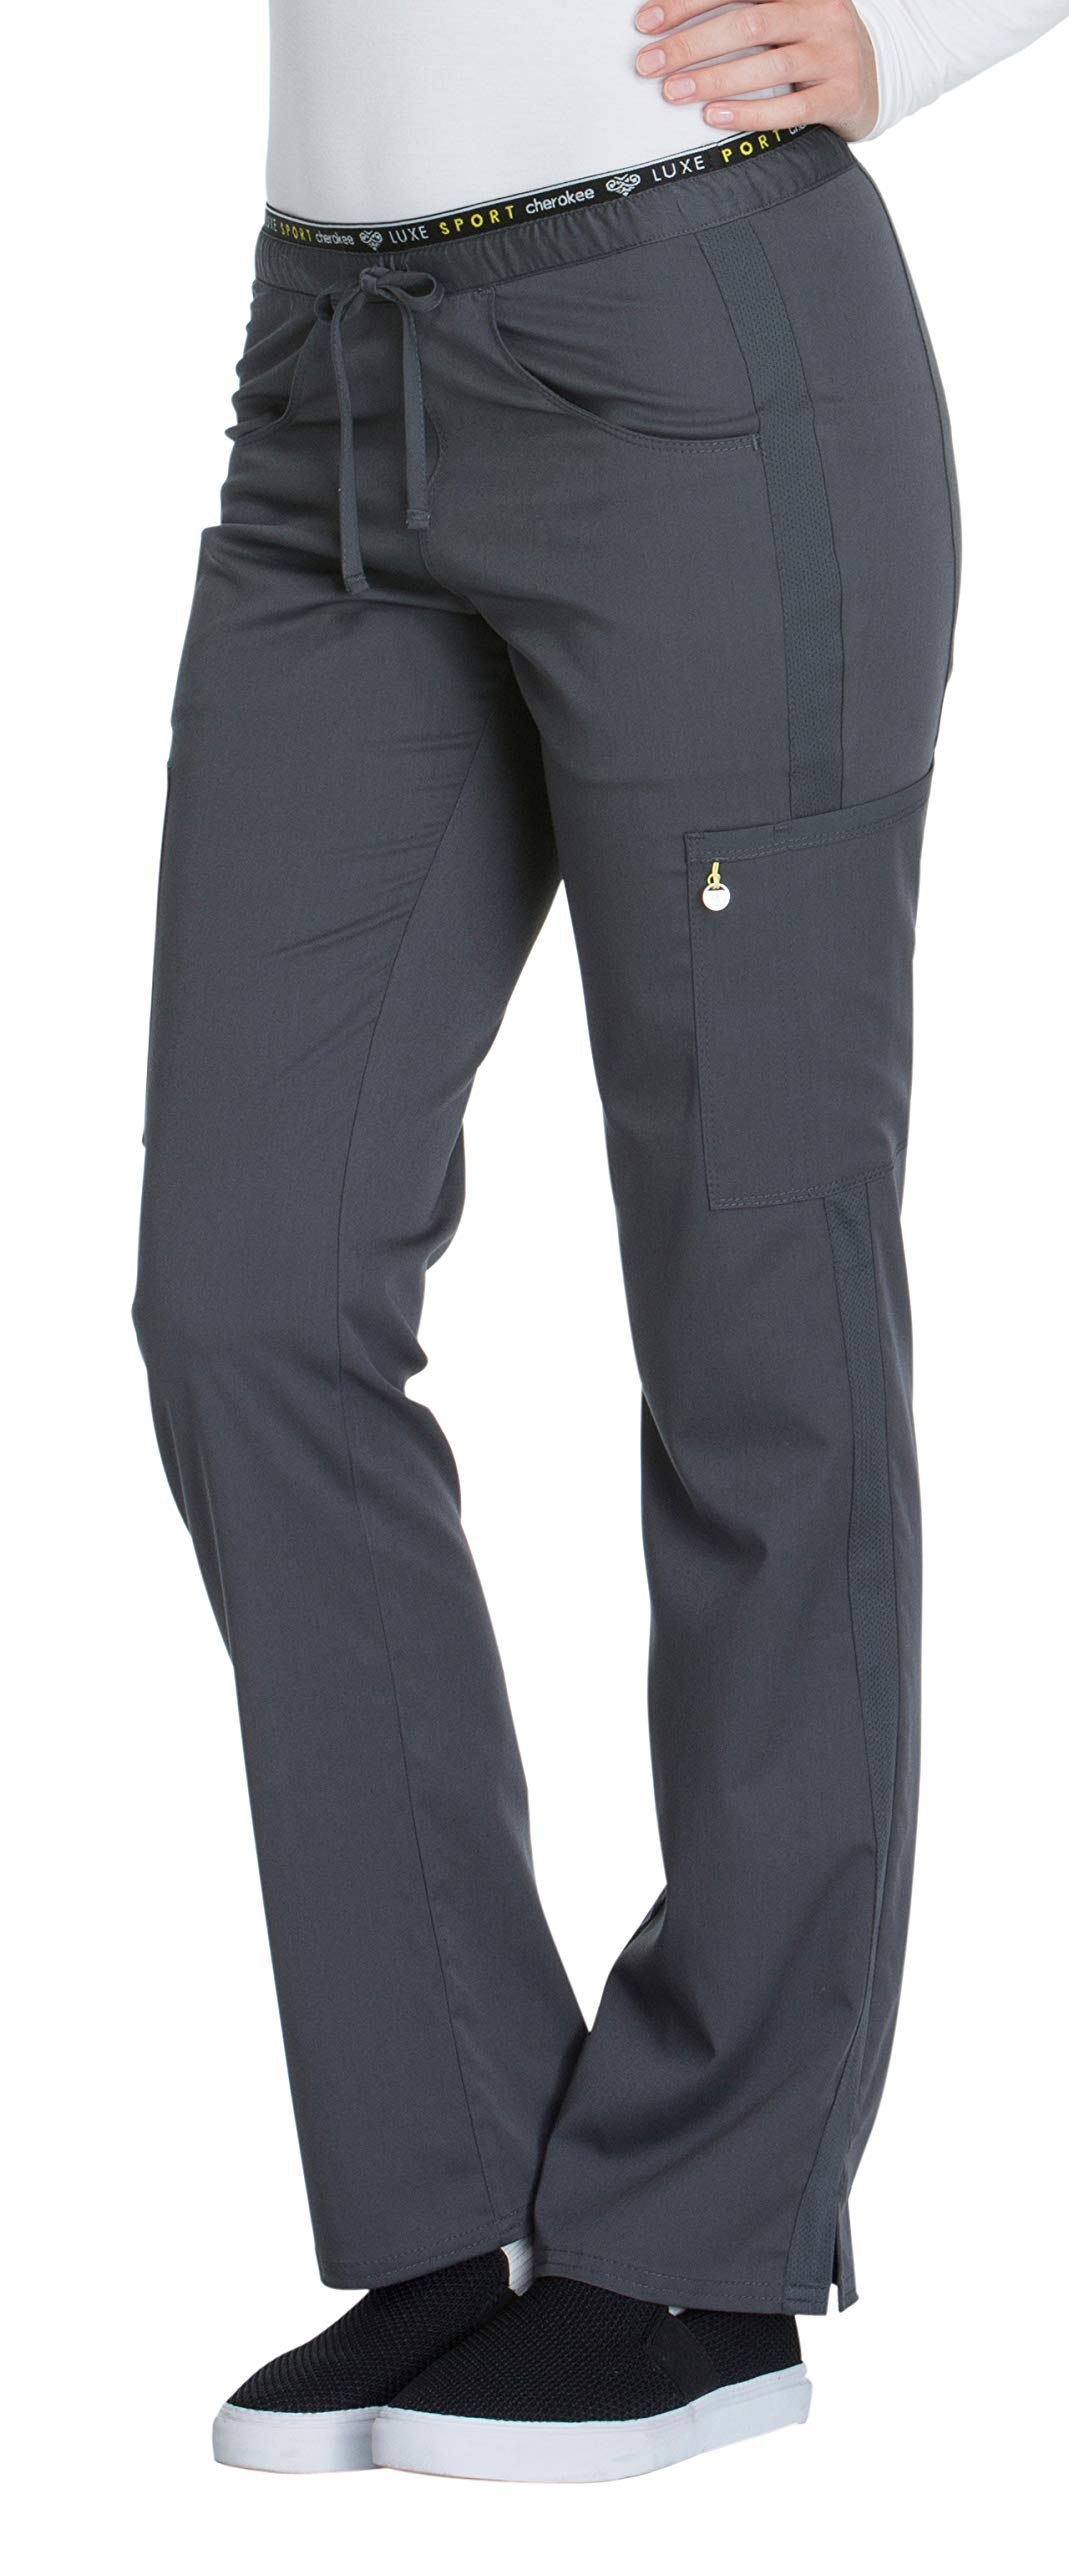 Cherokee Women's Luxe Sport Mid Rise Straight Leg Pull-on Pant, Pewter, Medium by Cherokee (Image #3)